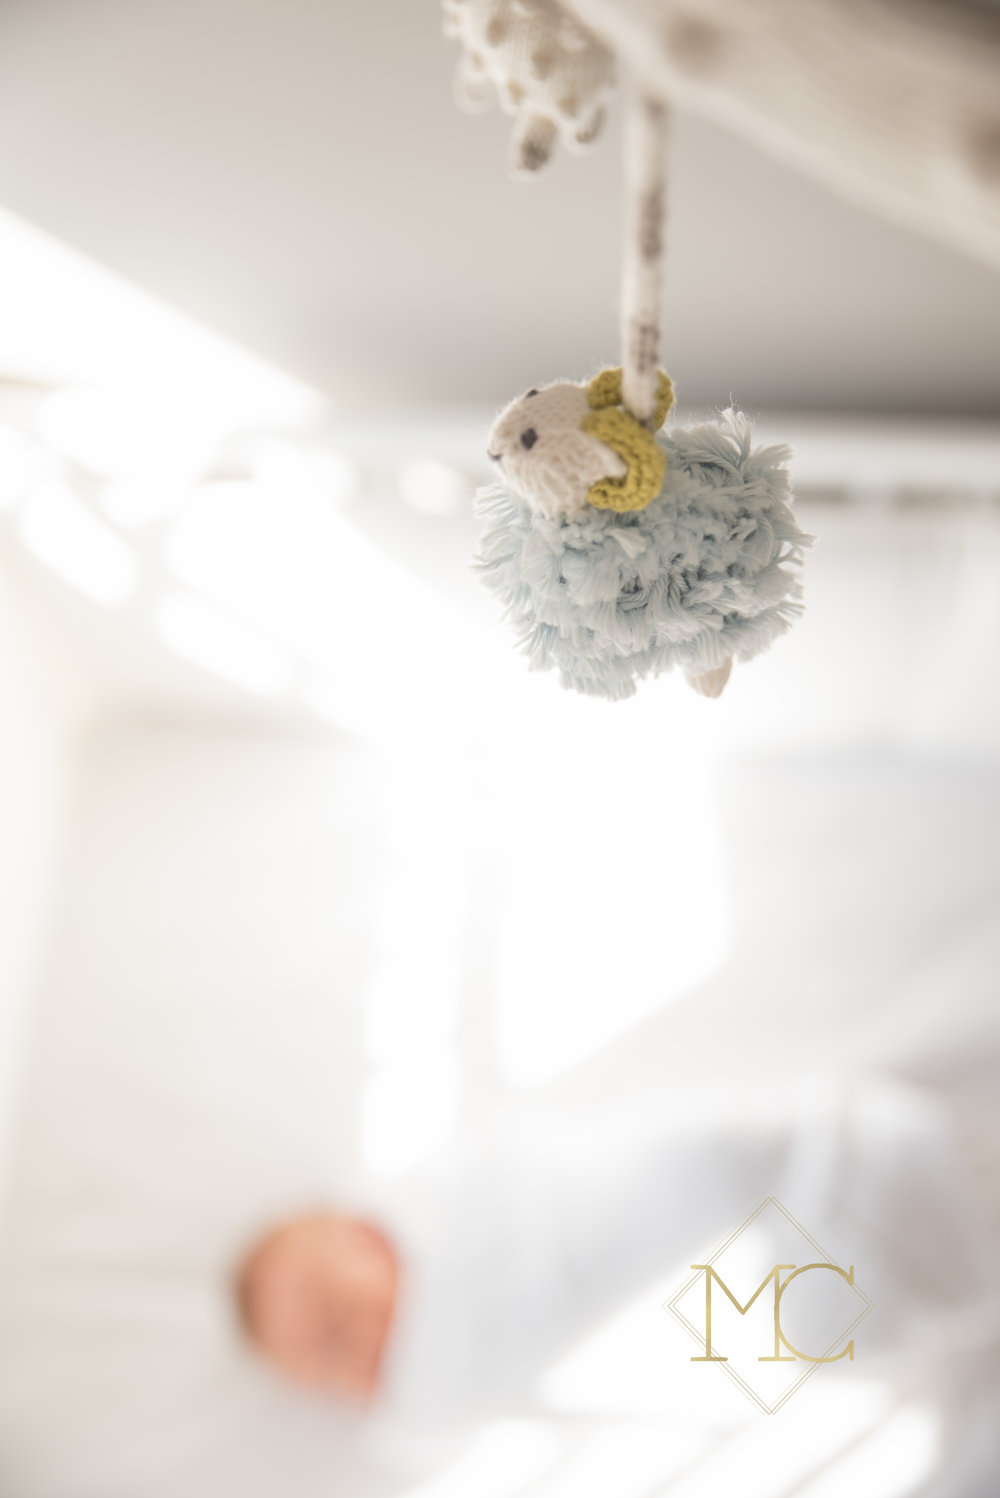 image from nashville newborn lifestyle photo session of baby girl in her crib with her blah blah mobile above her